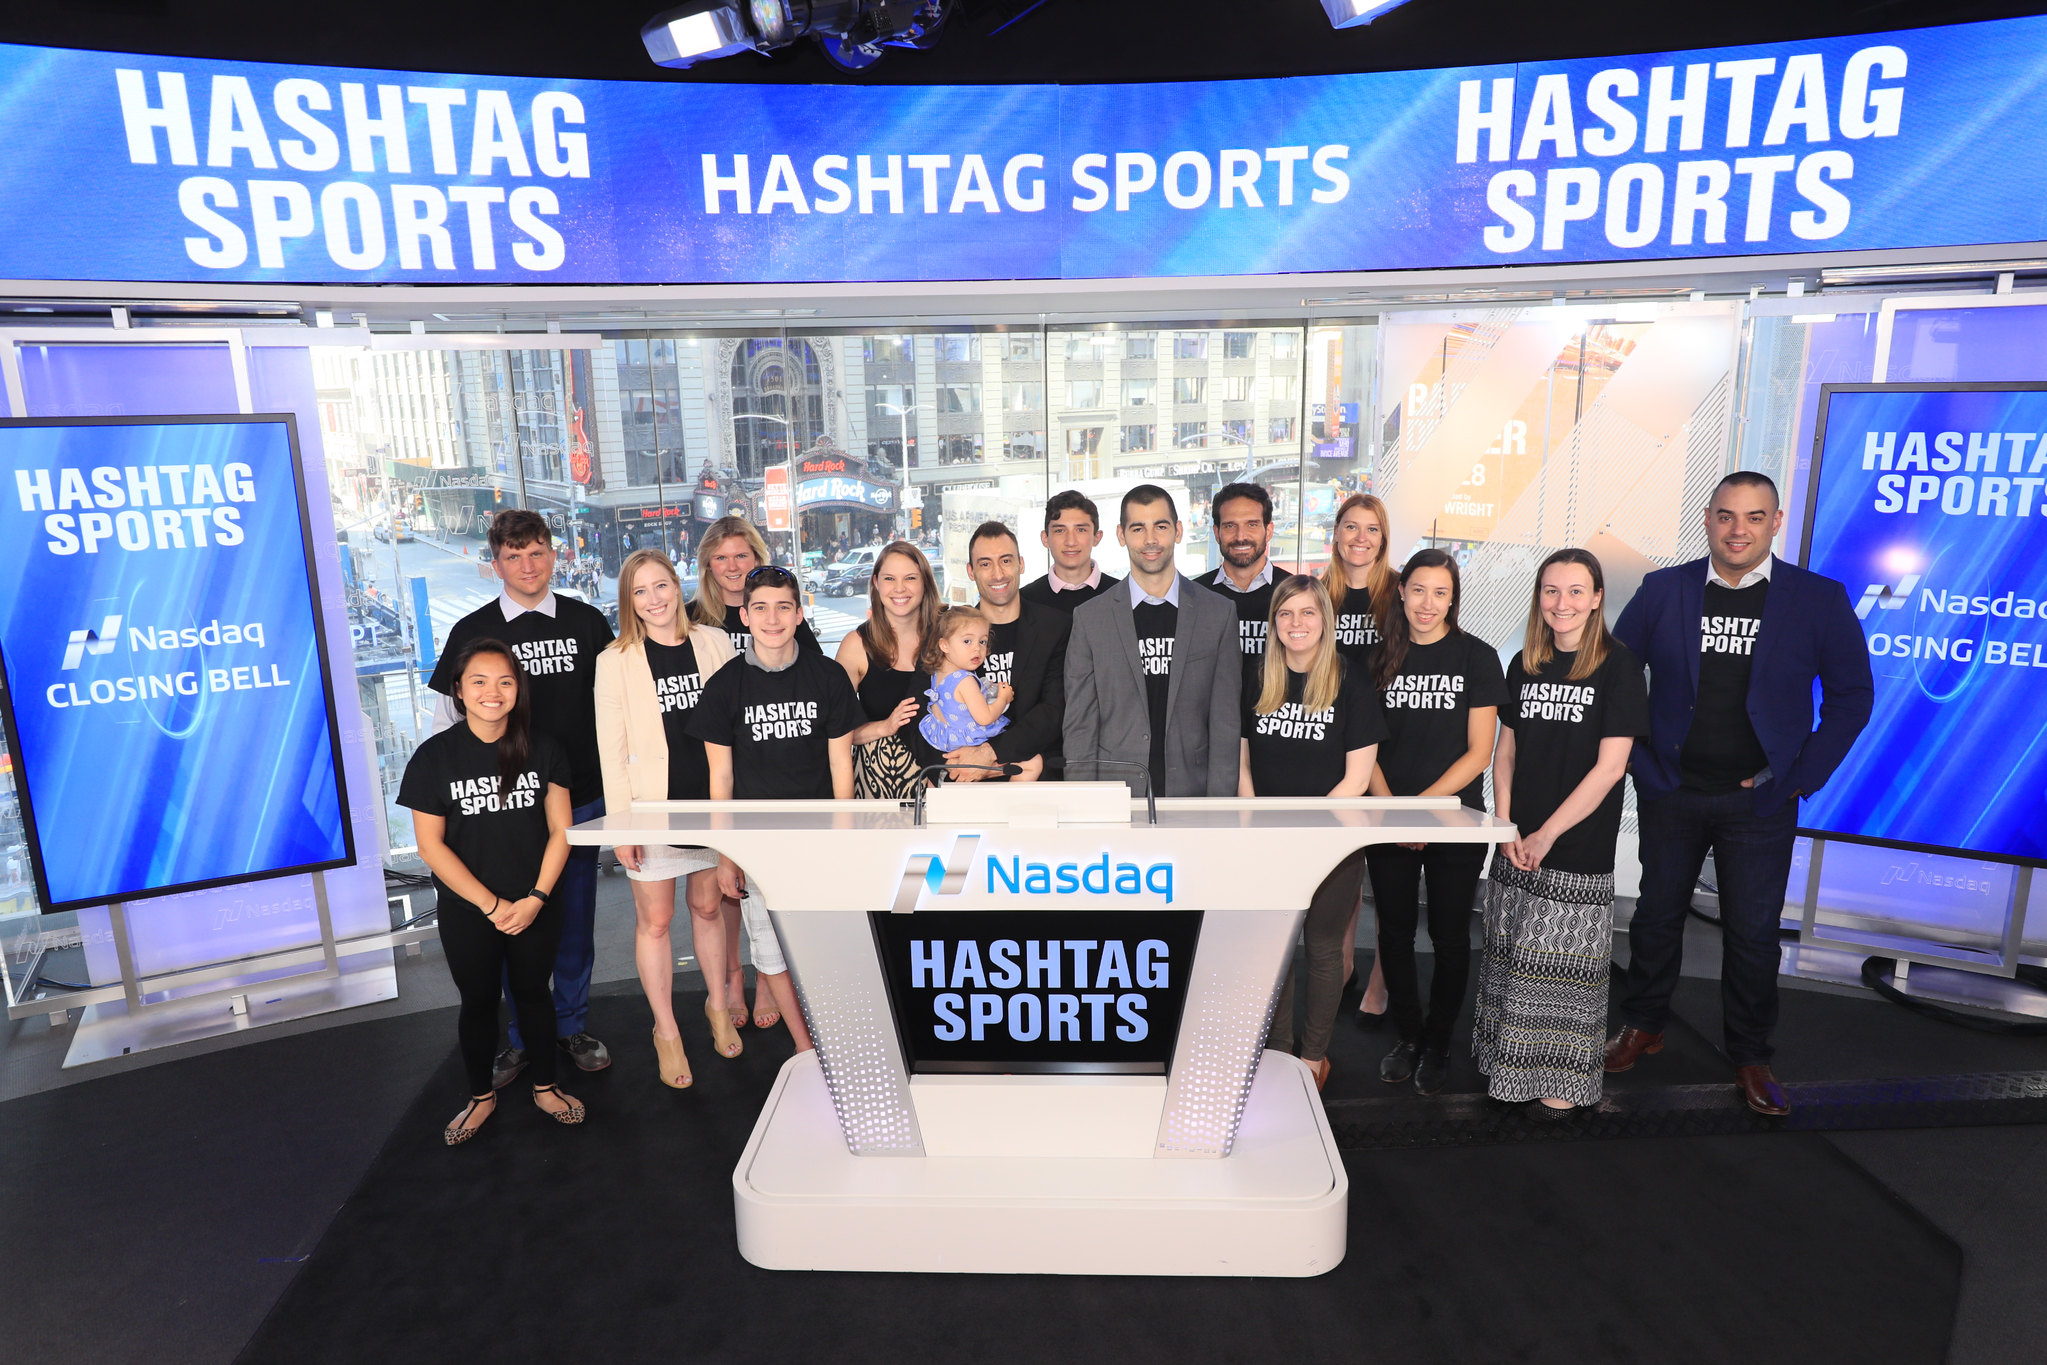 Hashtag Sports 2017 Highlights